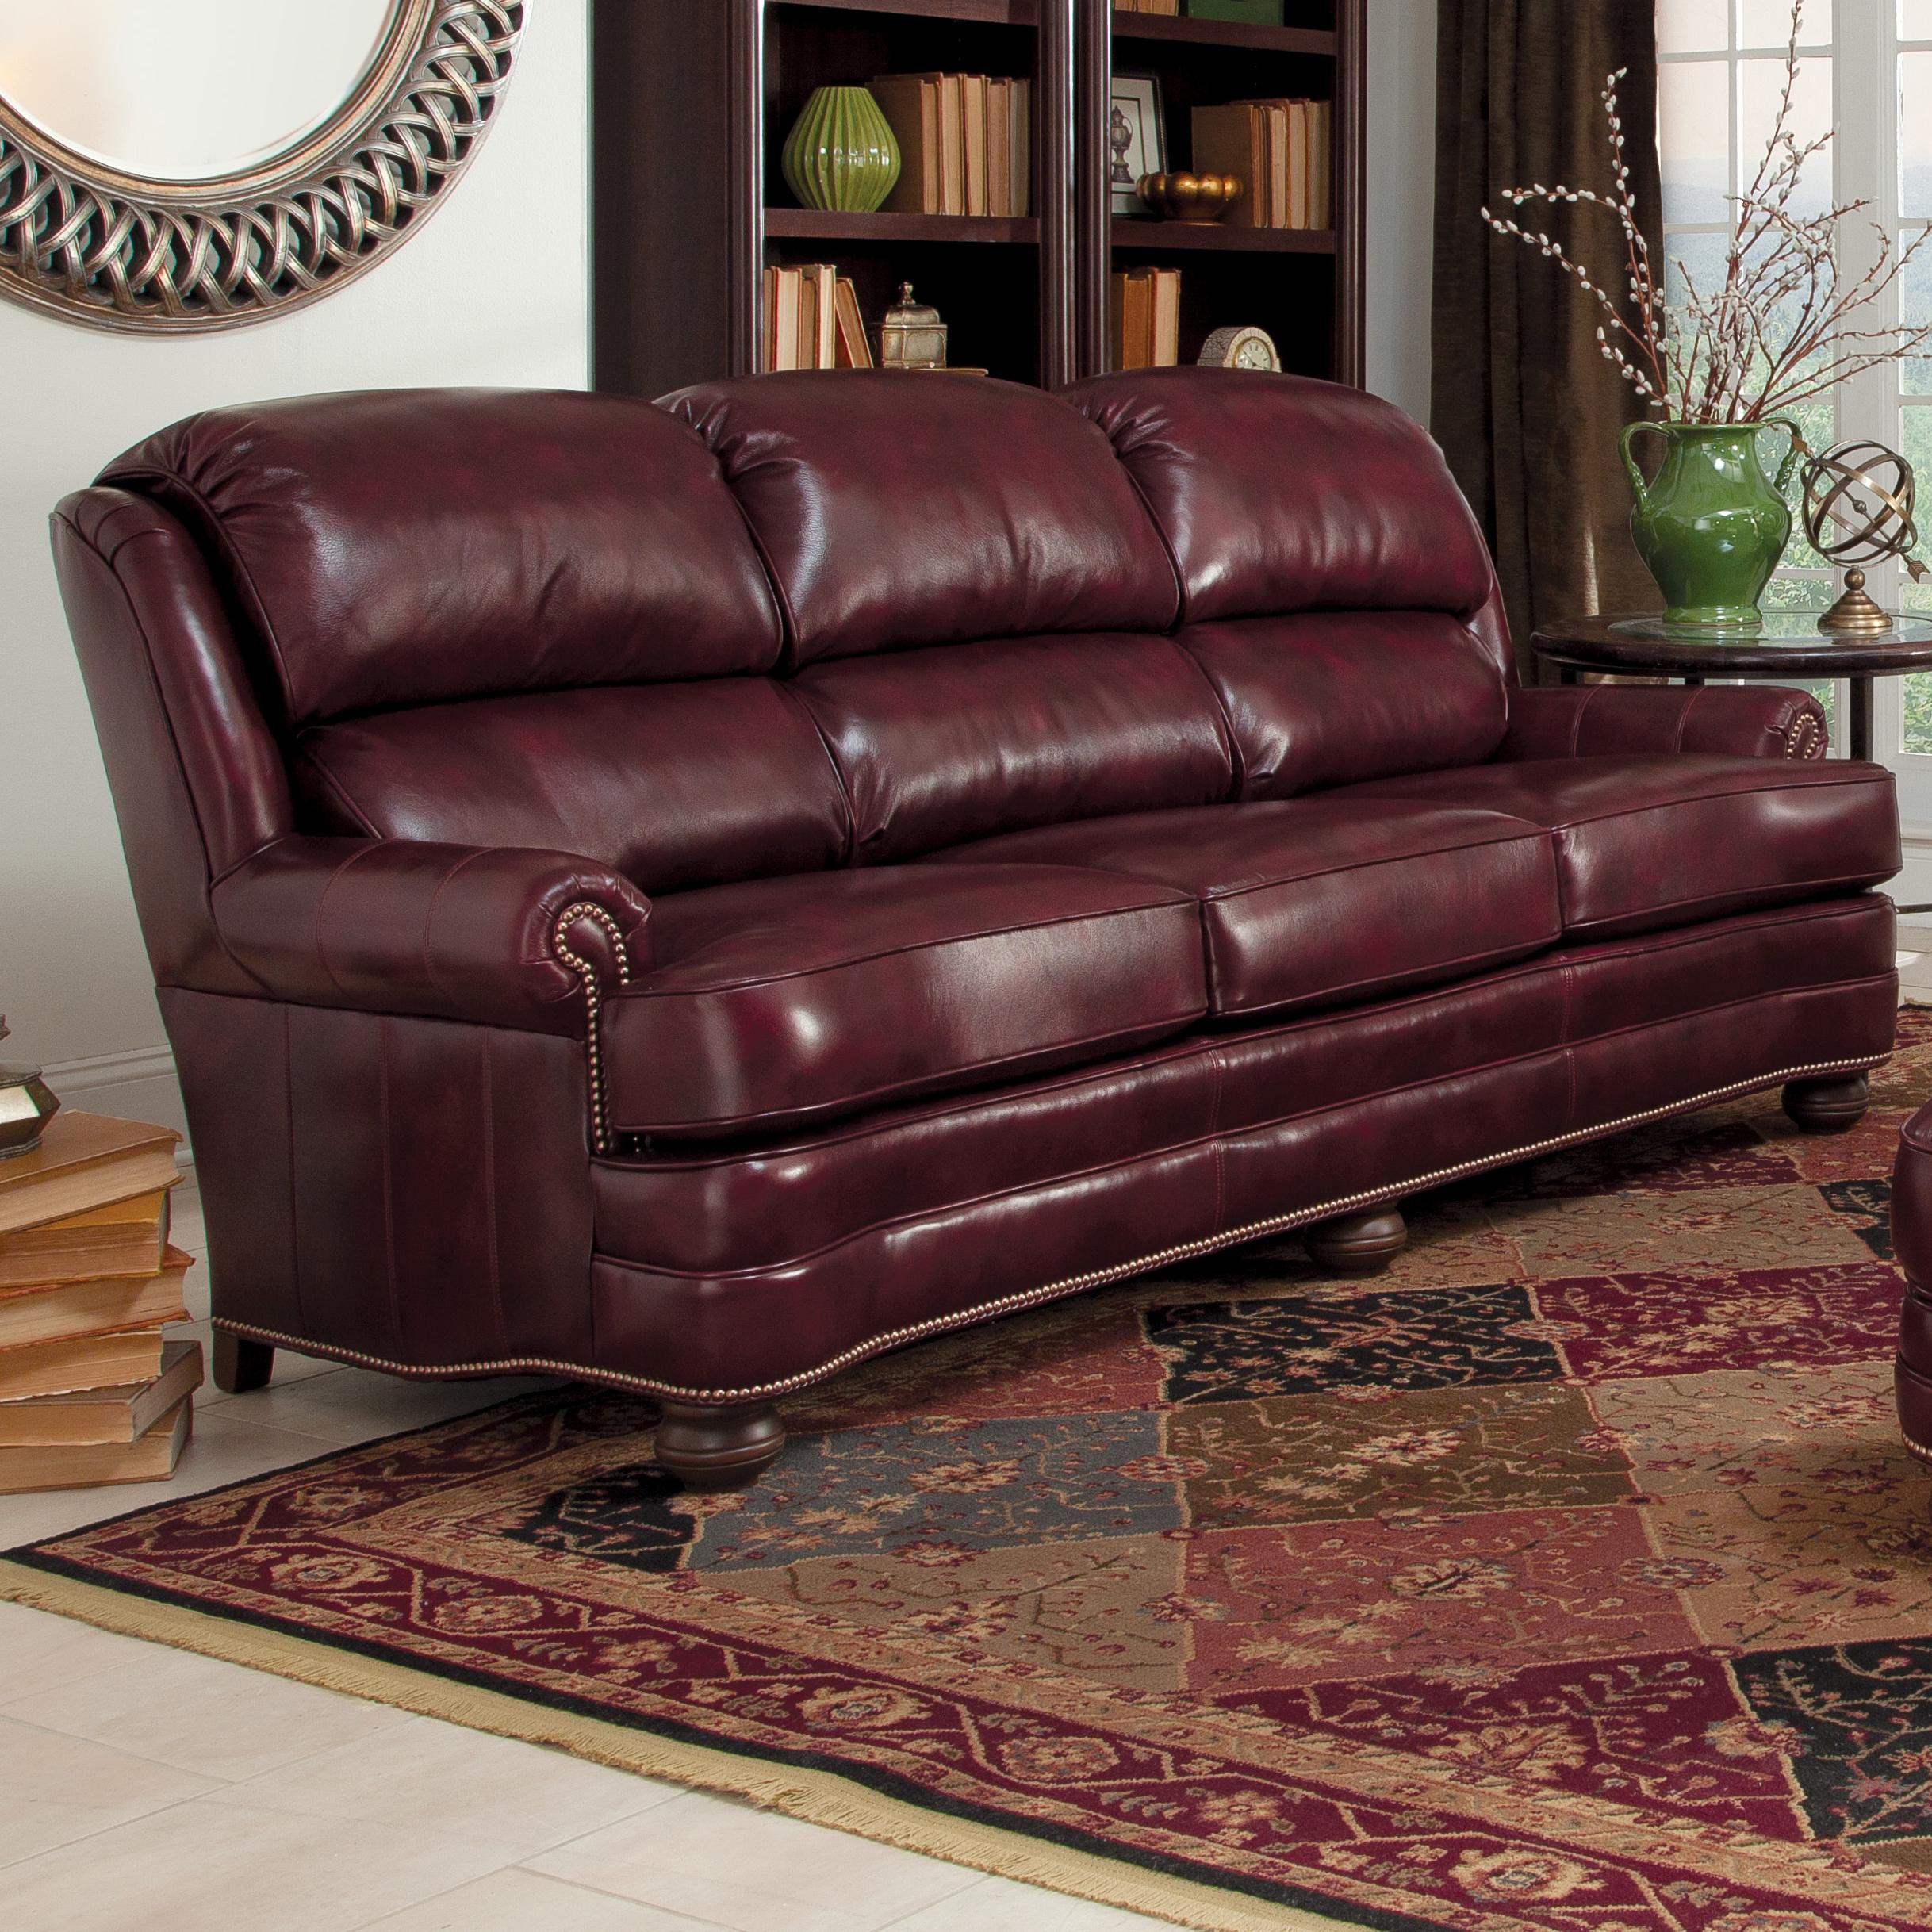 311 Upholstered Stationary Sofa by Smith Brothers at Rooms for Less